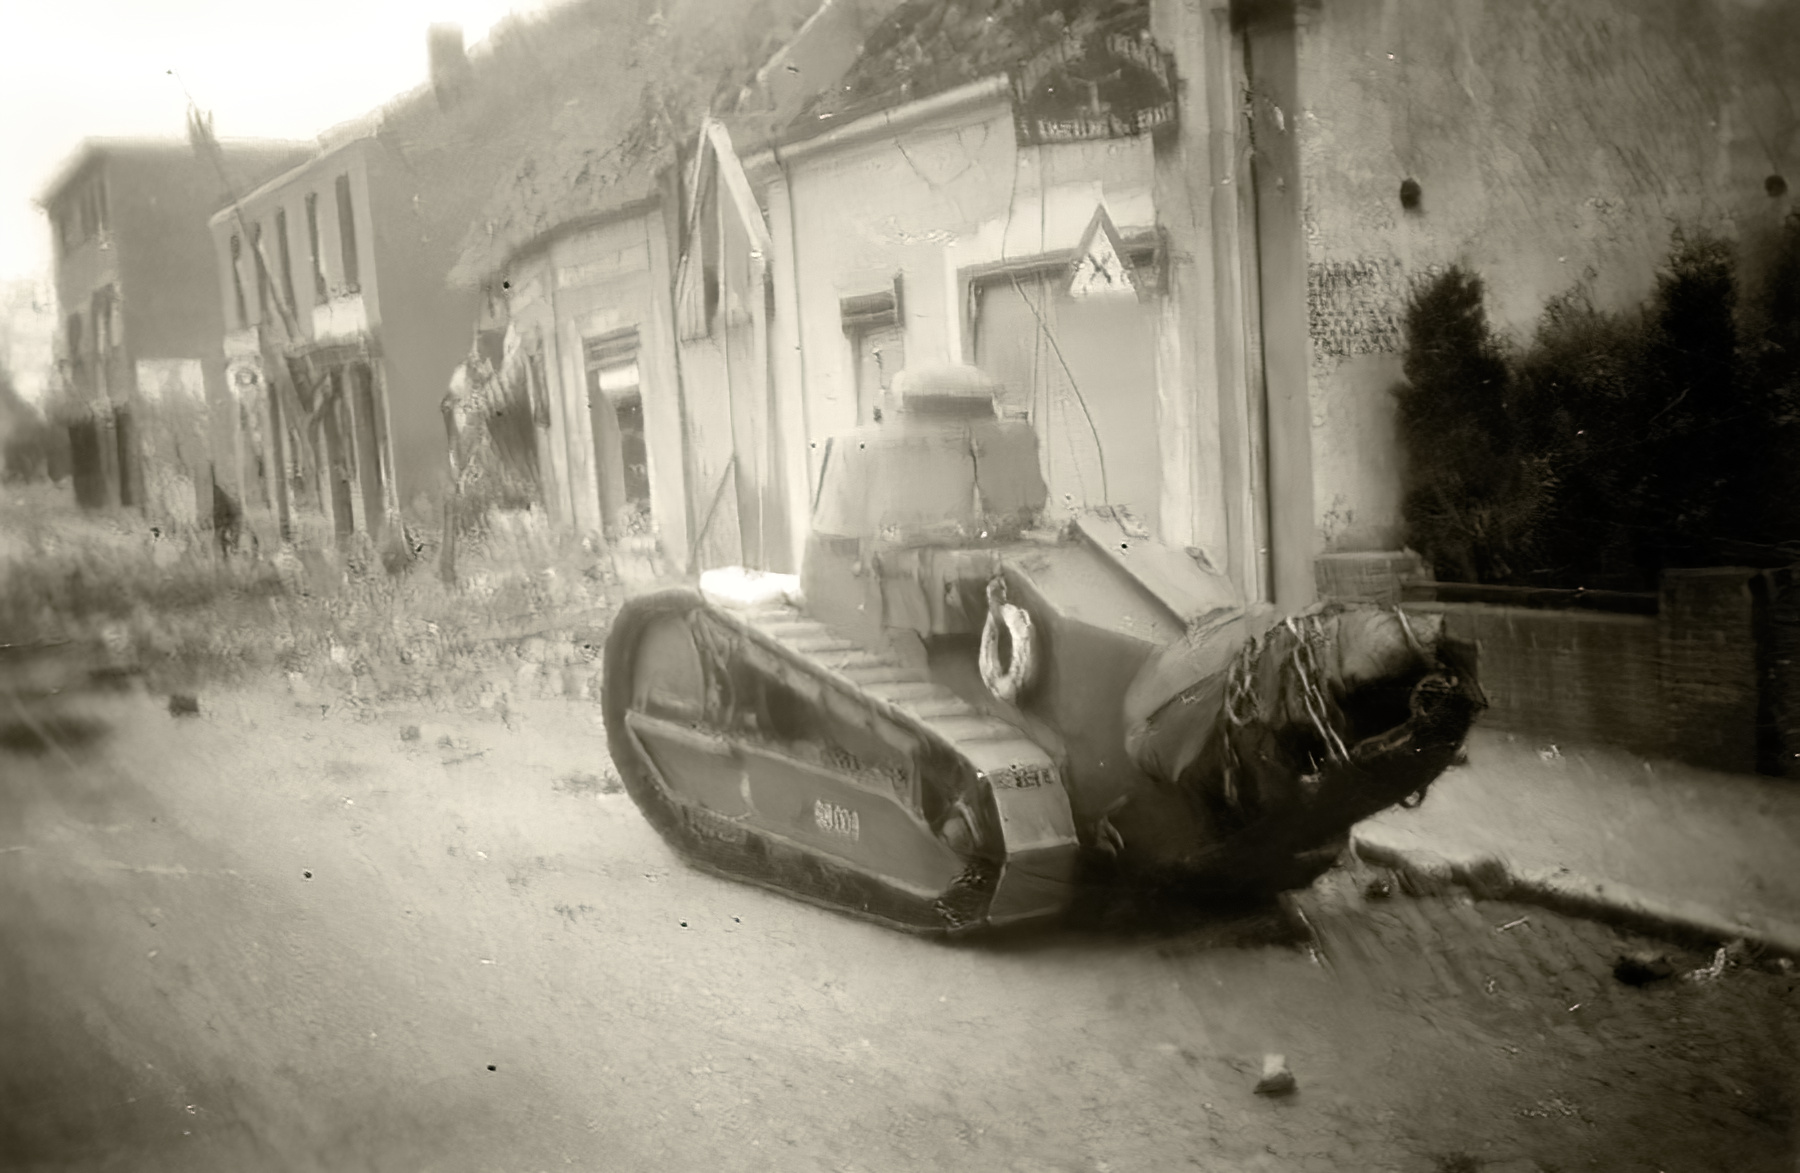 French Army Renault FT 17 captured in Belgium May 1940 ebay 01